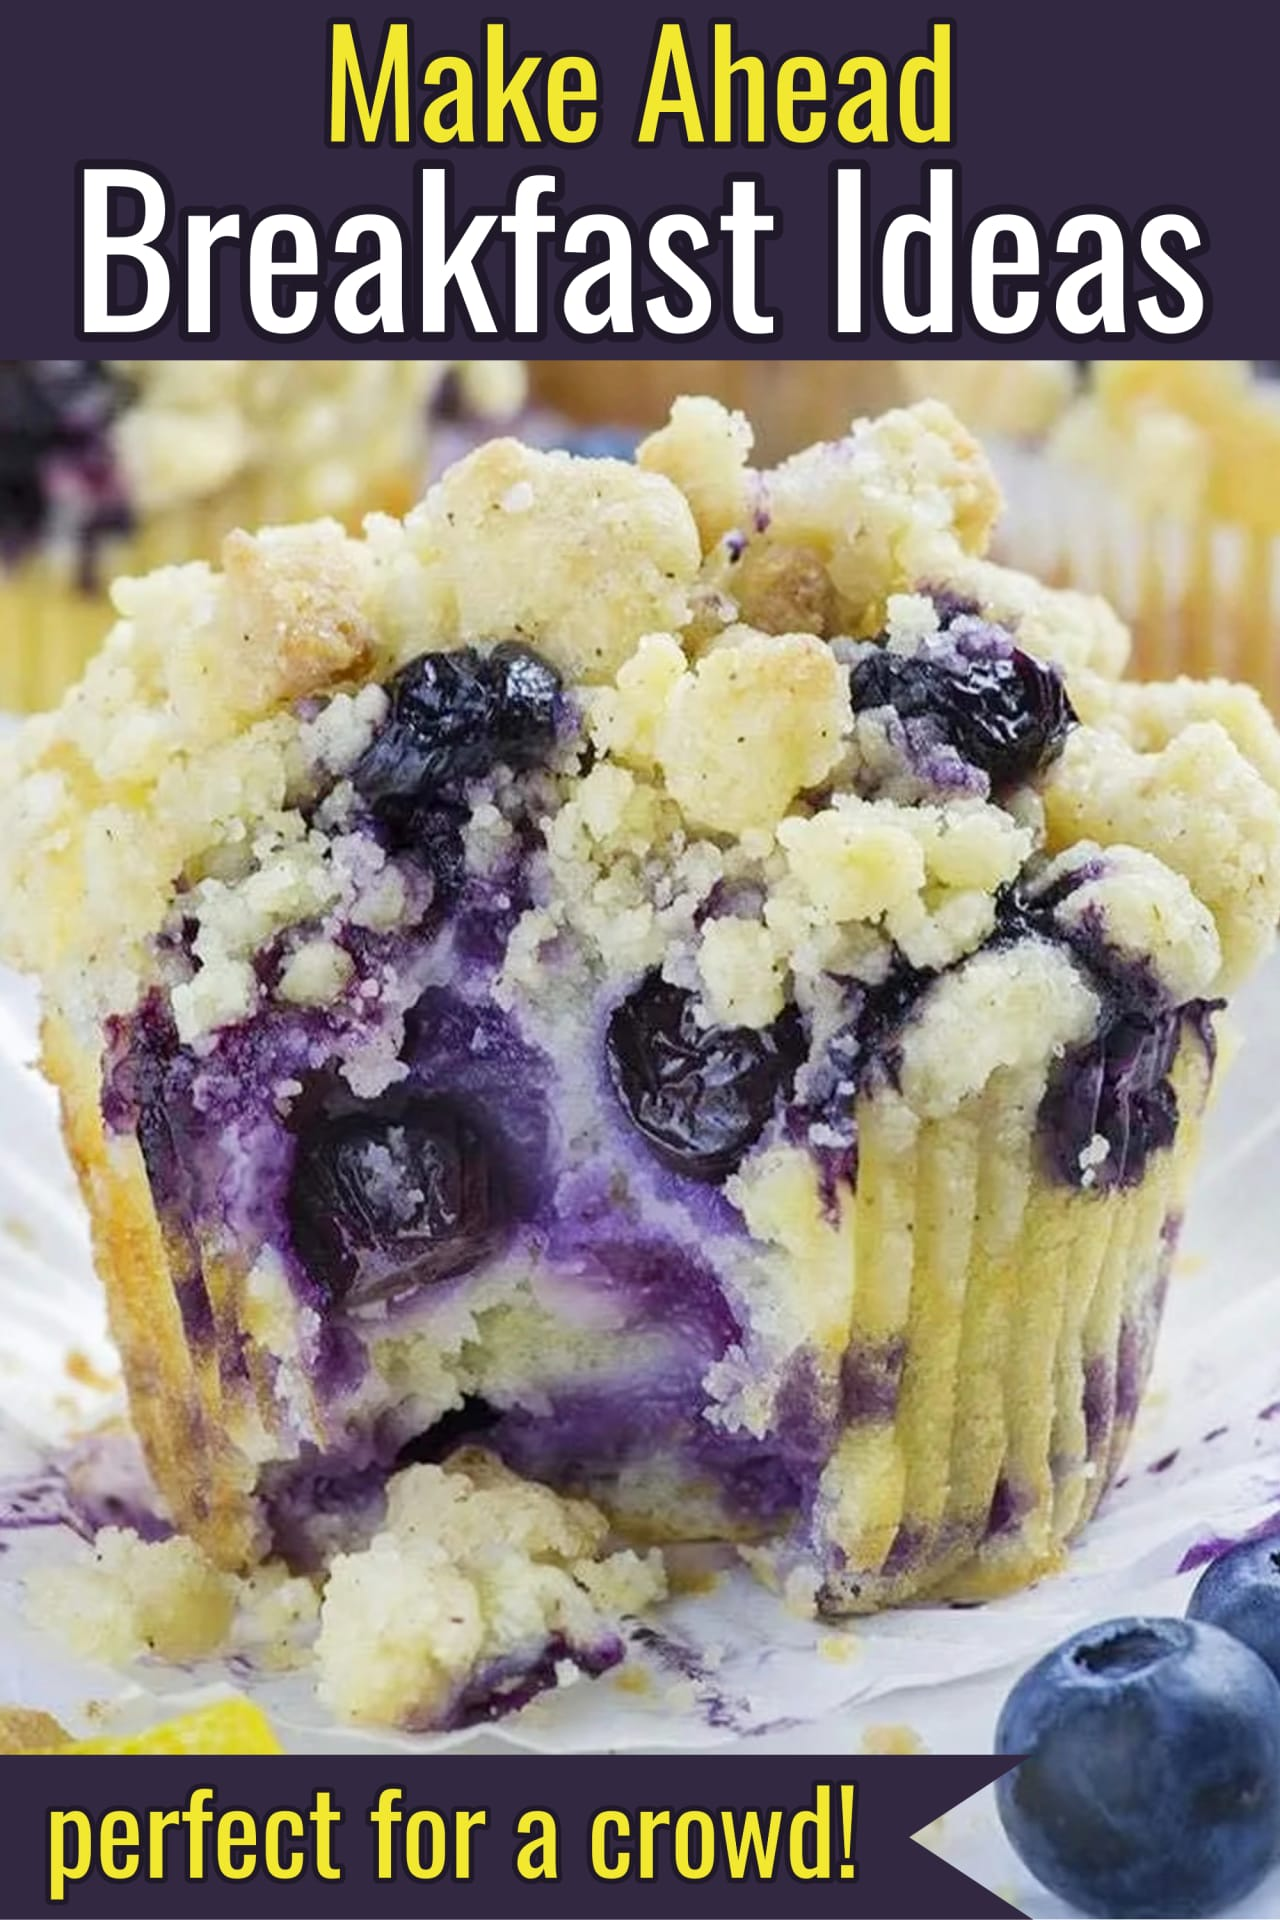 Breakfast ideas!  Easy make ahead breakfast recipes and brunch food ideas - simple breakfast food you can make the night before or freeze for later, take a look at these simple and yummy make ahead breakfast casseroles, bundt cakes, muffins and more below. They are sure to be crowd pleasers whether it's for Christmas morning breakfast, weekend guests, or for your busy family